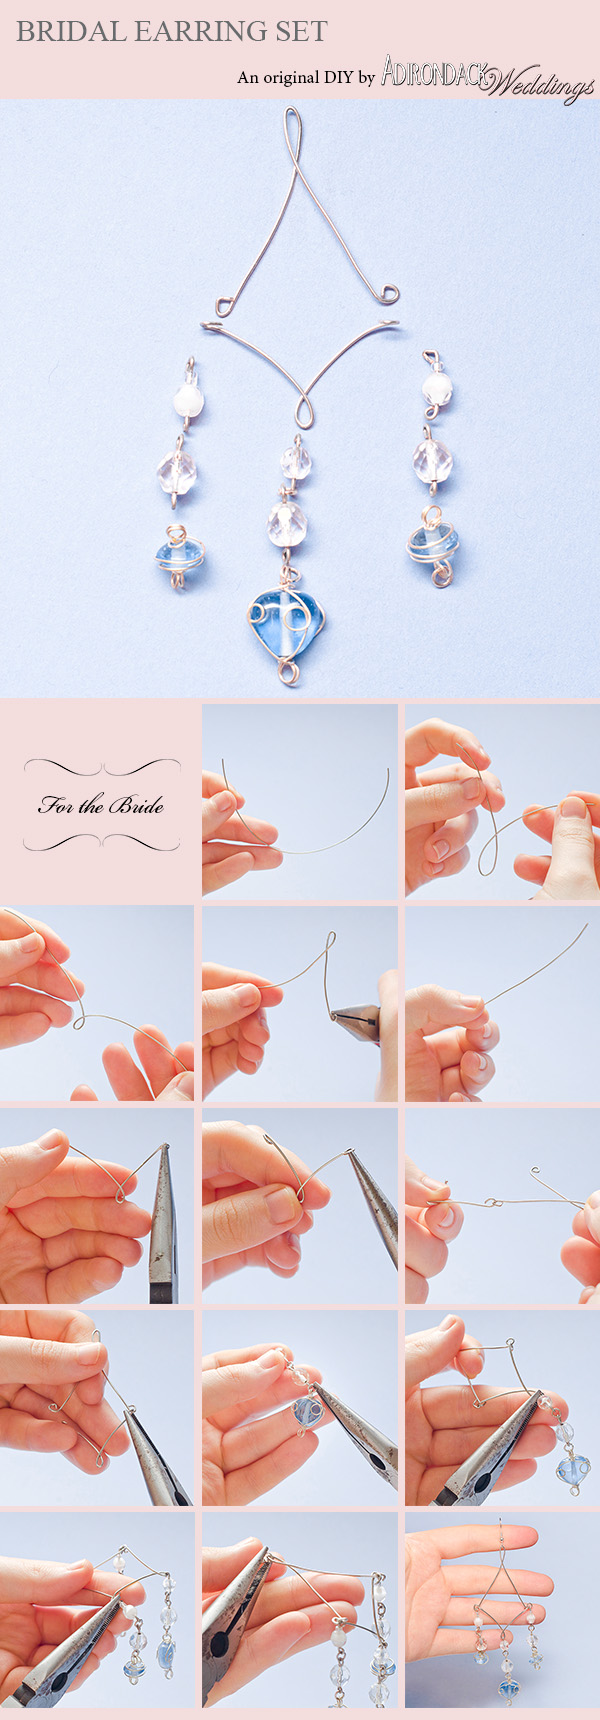 DIY Bridal Earring Set | Adirondack Weddings Magazine